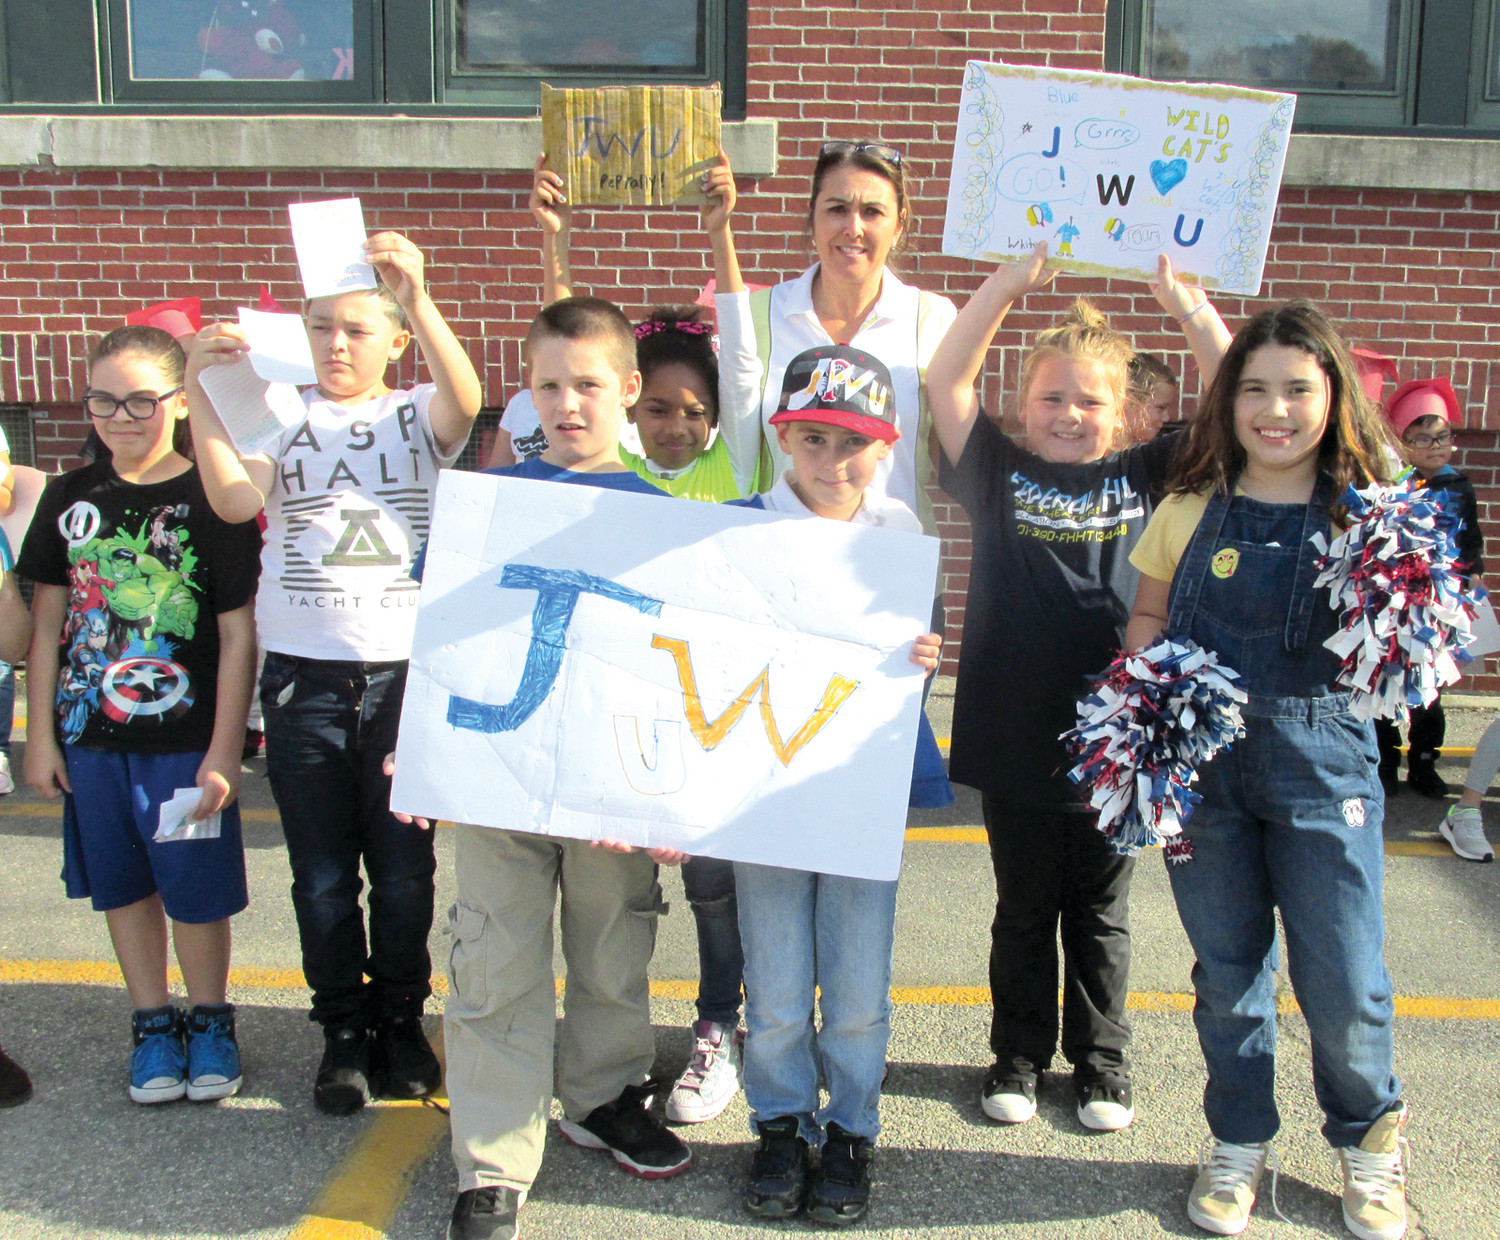 REGO'S ROOTERS: Johnson & Wales University was the college of choice for Ms. Rego's Grade 3 class that was among the fun-filled teams at last Friday's College Pep Rally at Thornton School.